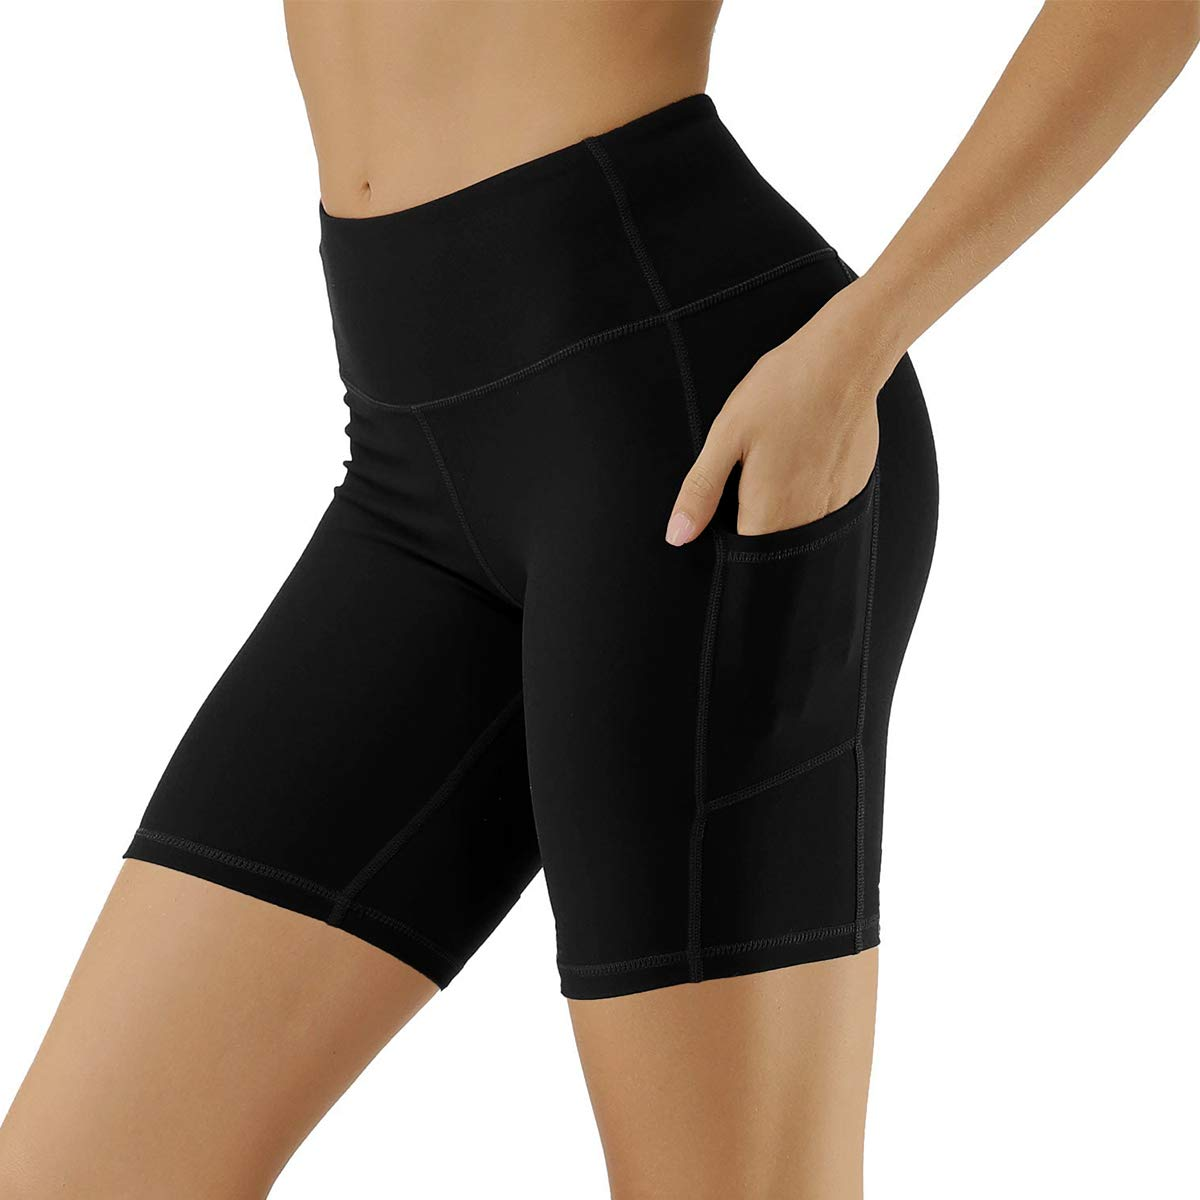 Aoliks Women's High Waisted Yoga Shorts Two Side Pocket - Best Pants for Running,Dance,Bike